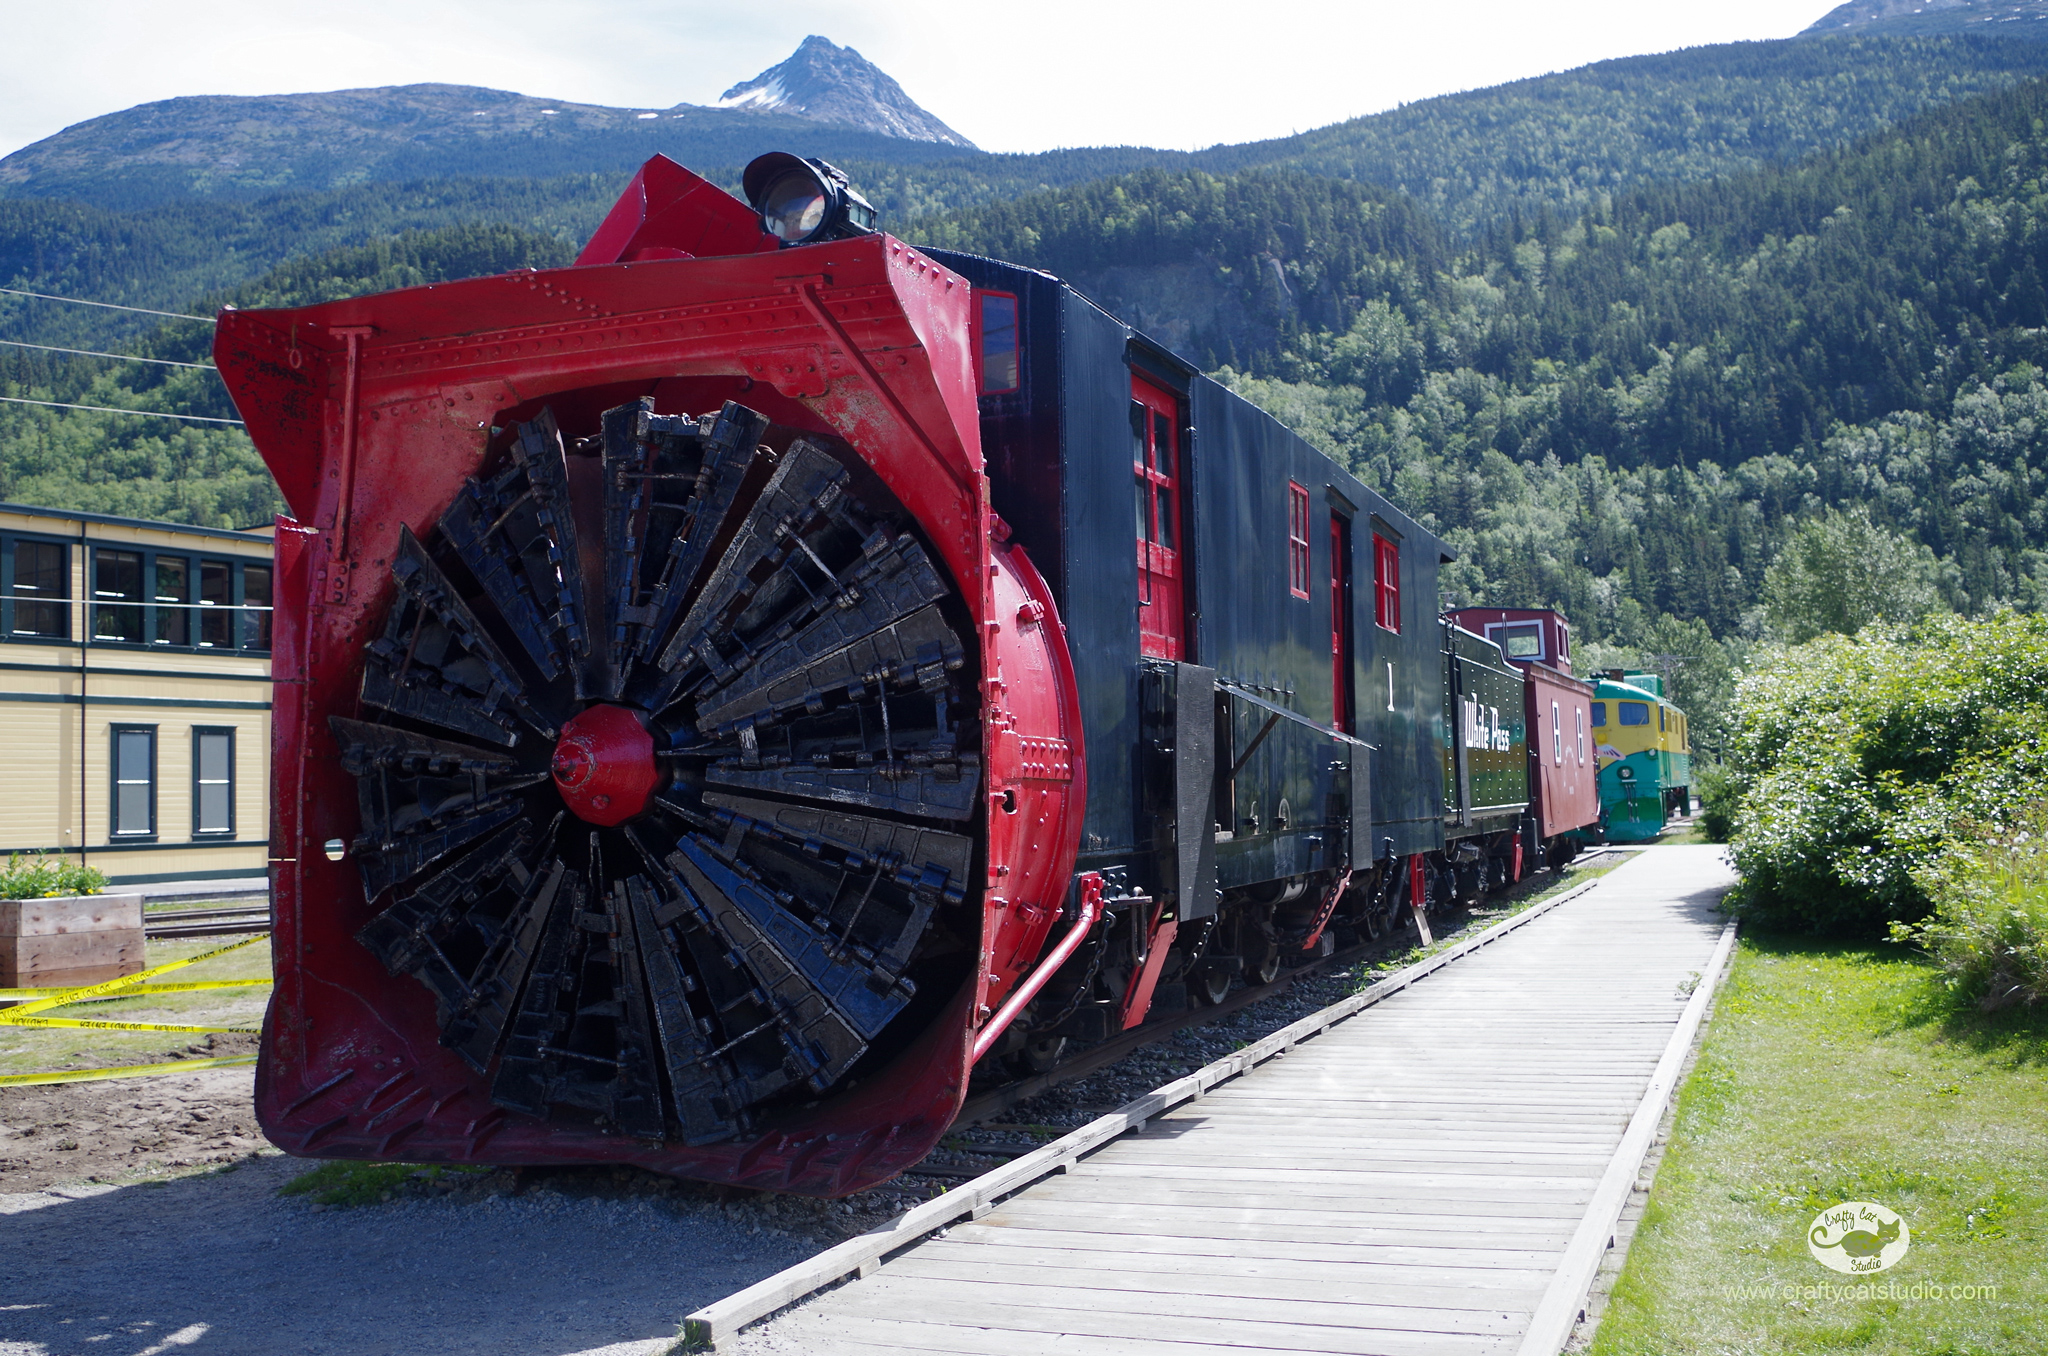 skagway_train_snow_plow.jpg